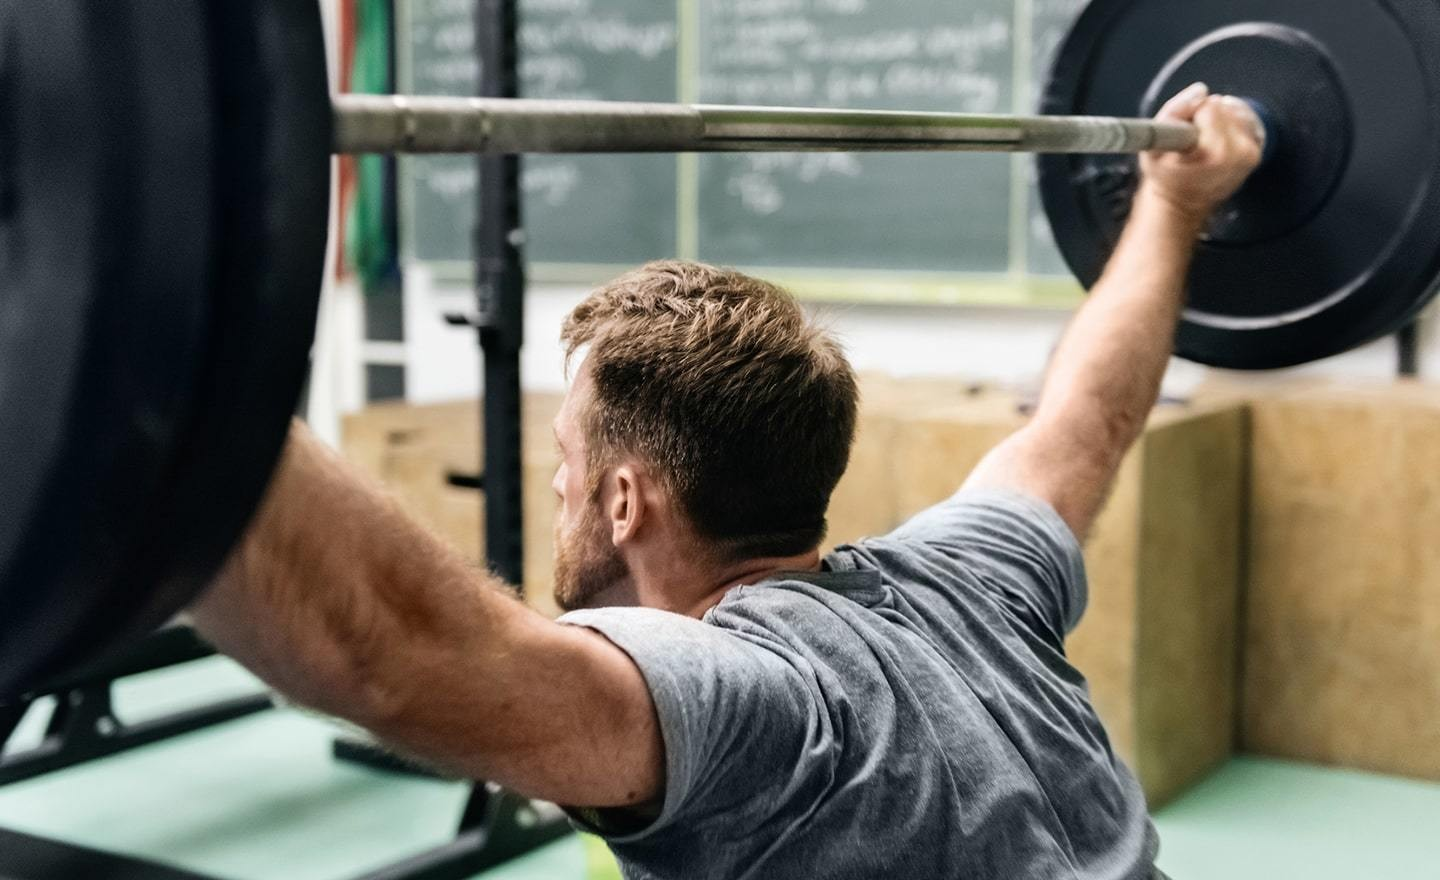 Man lifting weights seen from behind